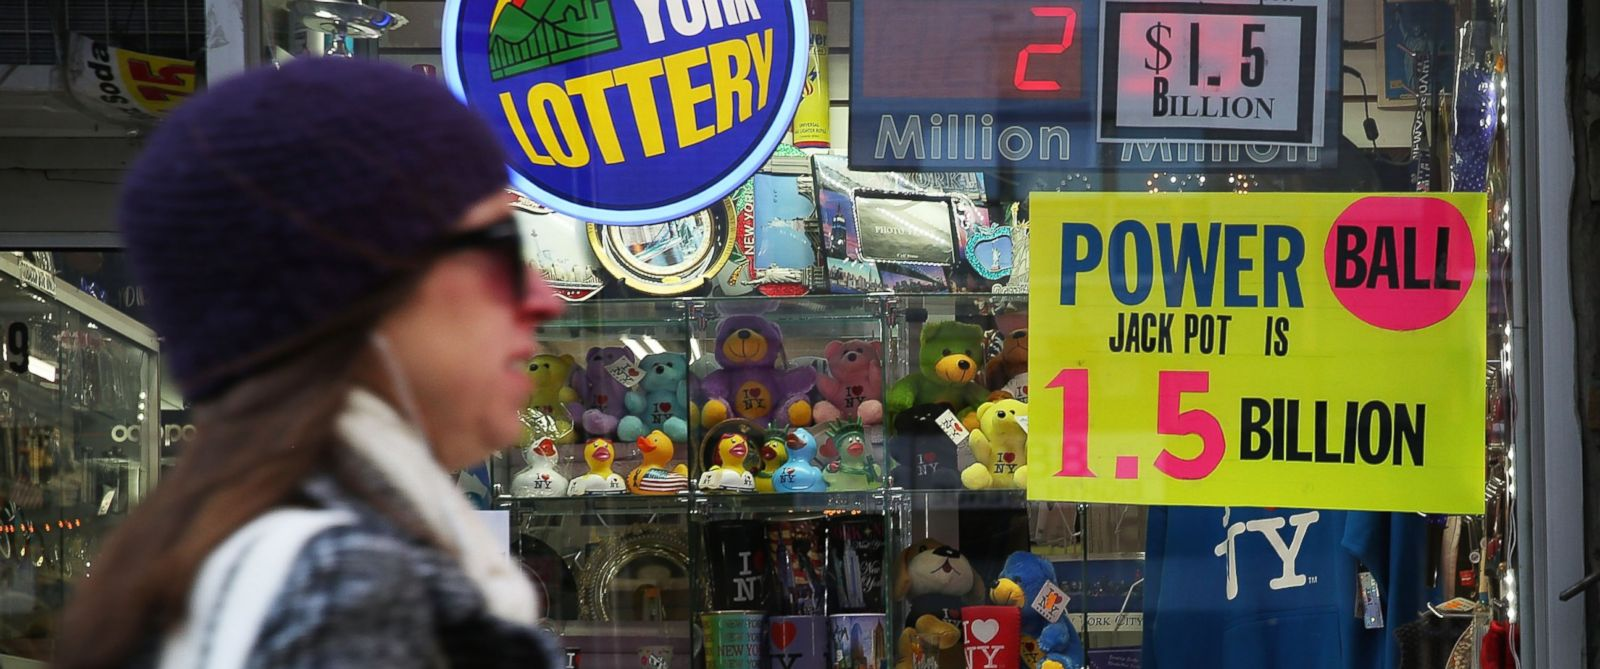 PHOTO: A sign advertises the Powerball jackpot outside of a magazine store on Jan. 13, 2016 in New York City.